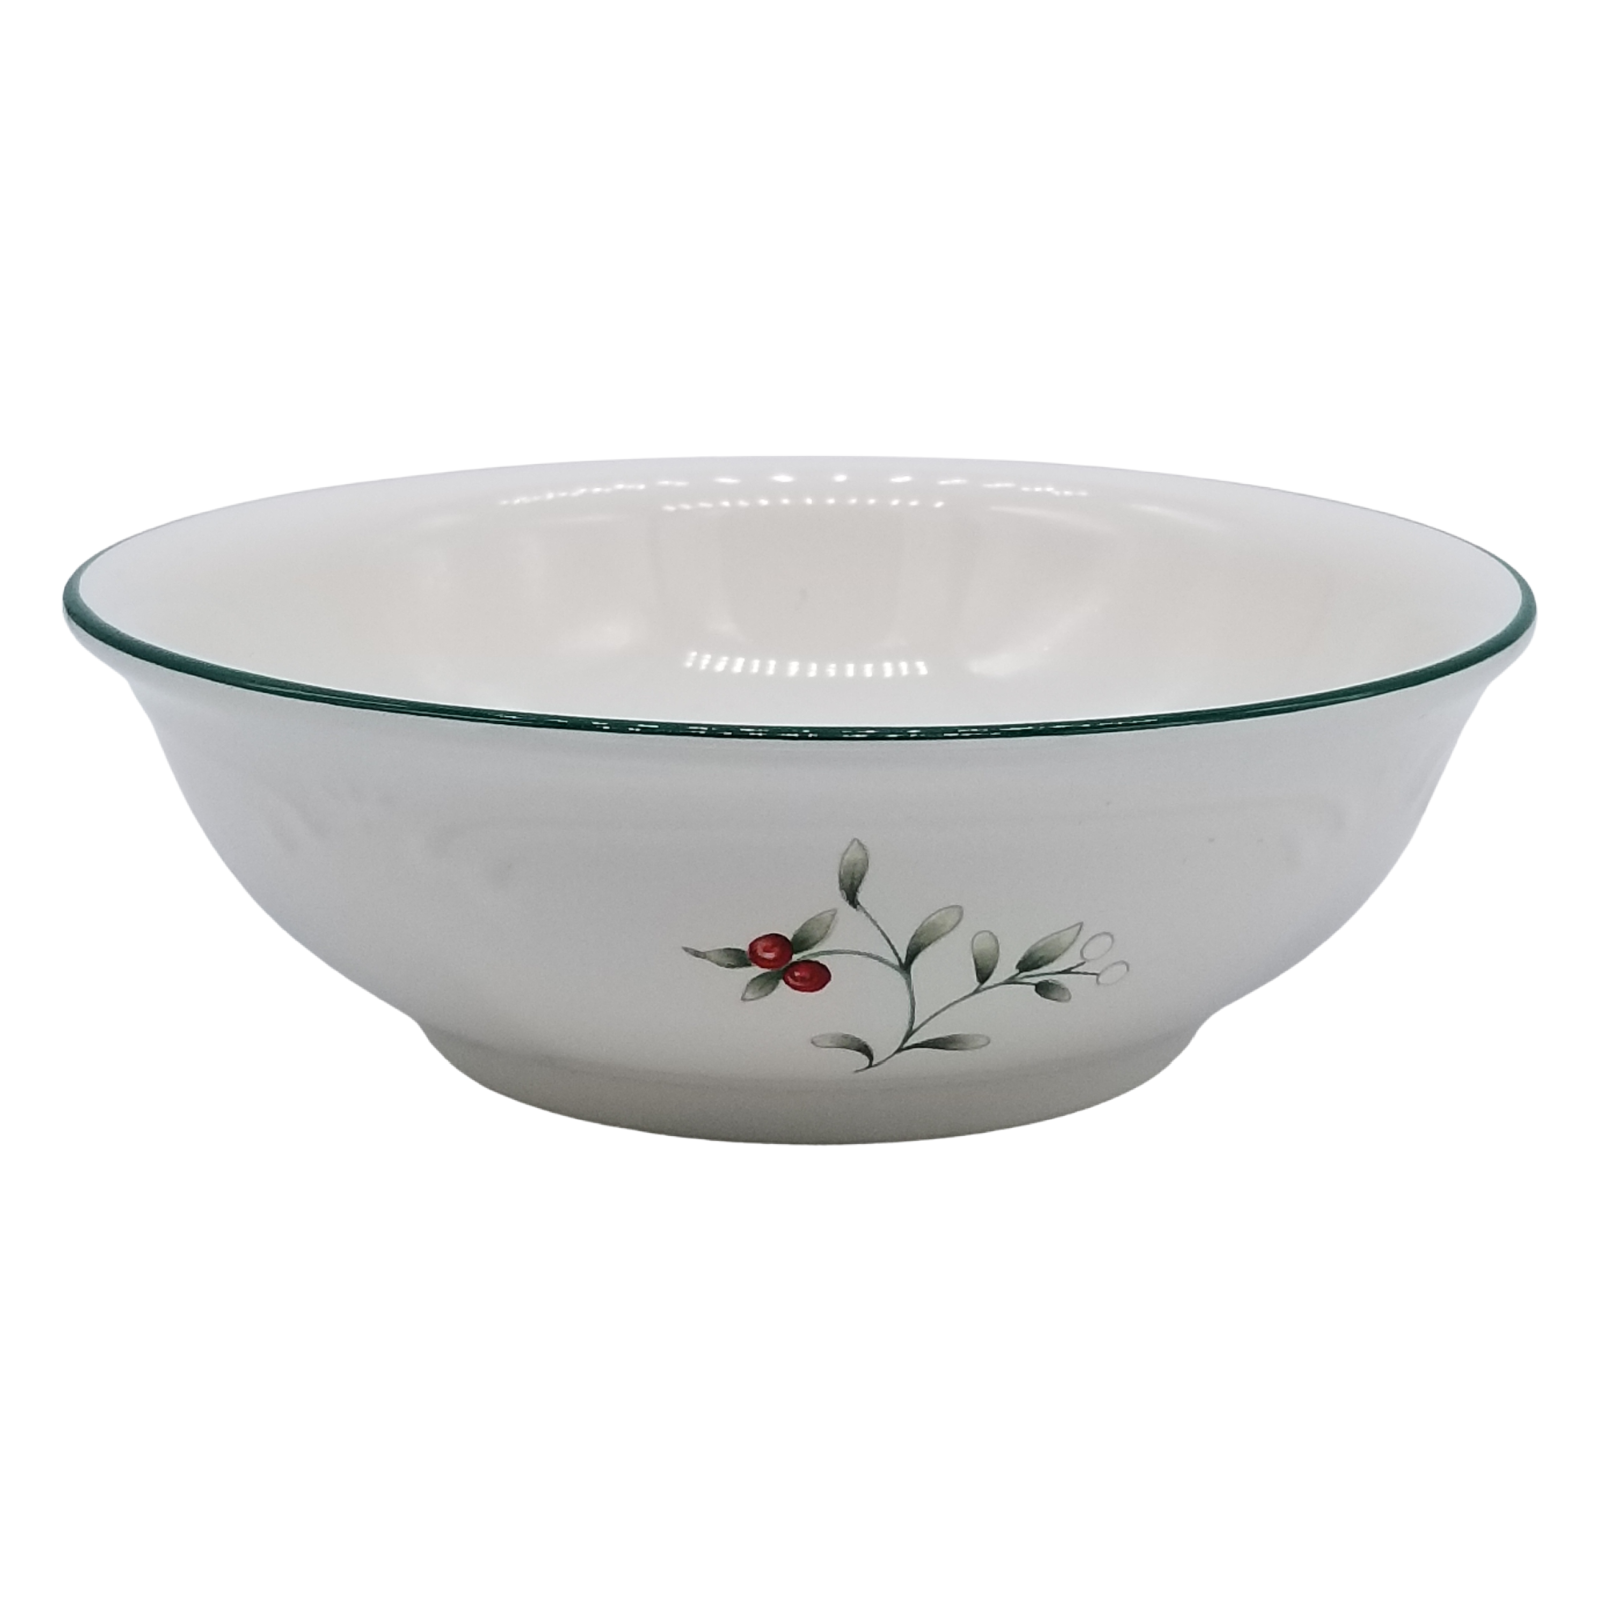 Pfaltzgraff Soup/Cereal Bowl Winterberry Replacement Holiday One Piece 5-7/8in - $8.99